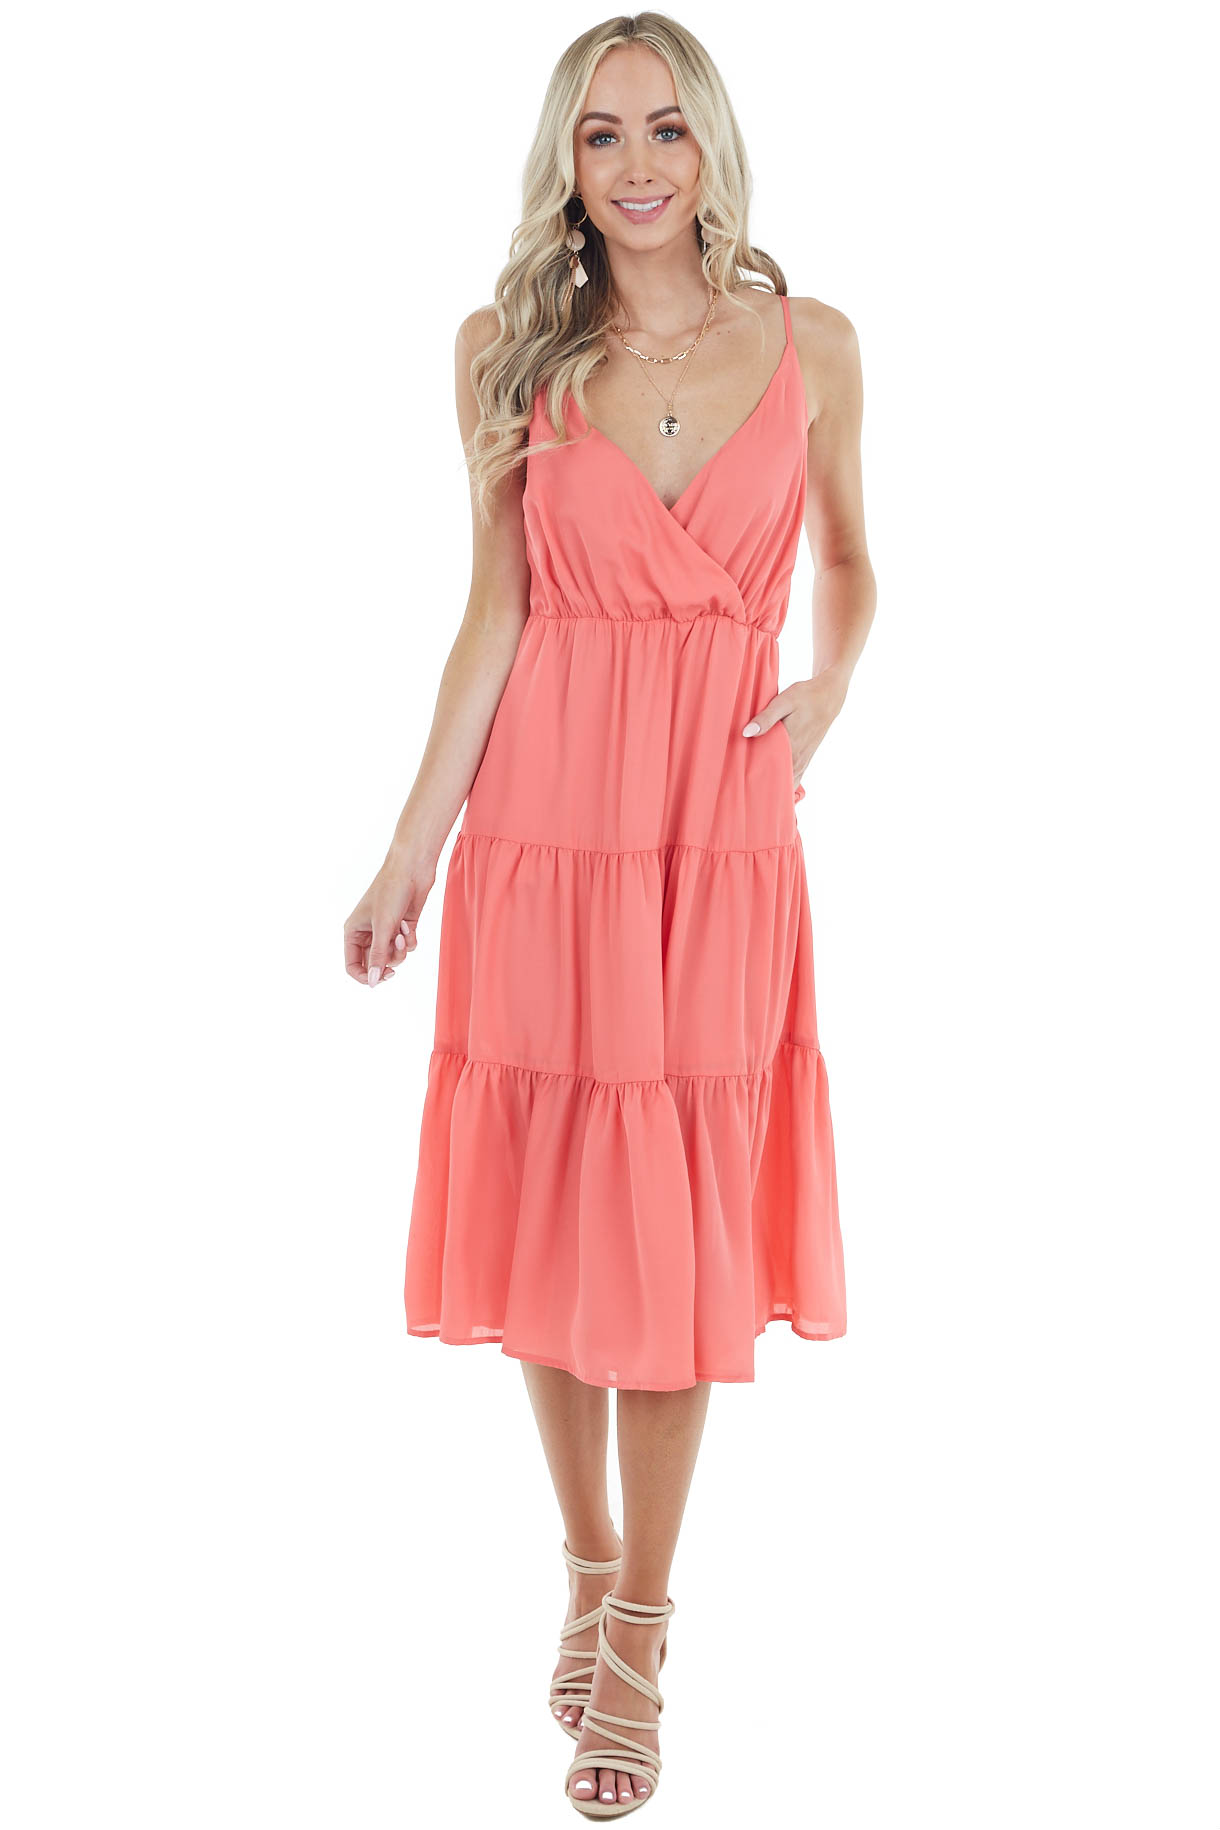 Coral Sleeveless Midi Dress with V Neck and Ruffled Detail